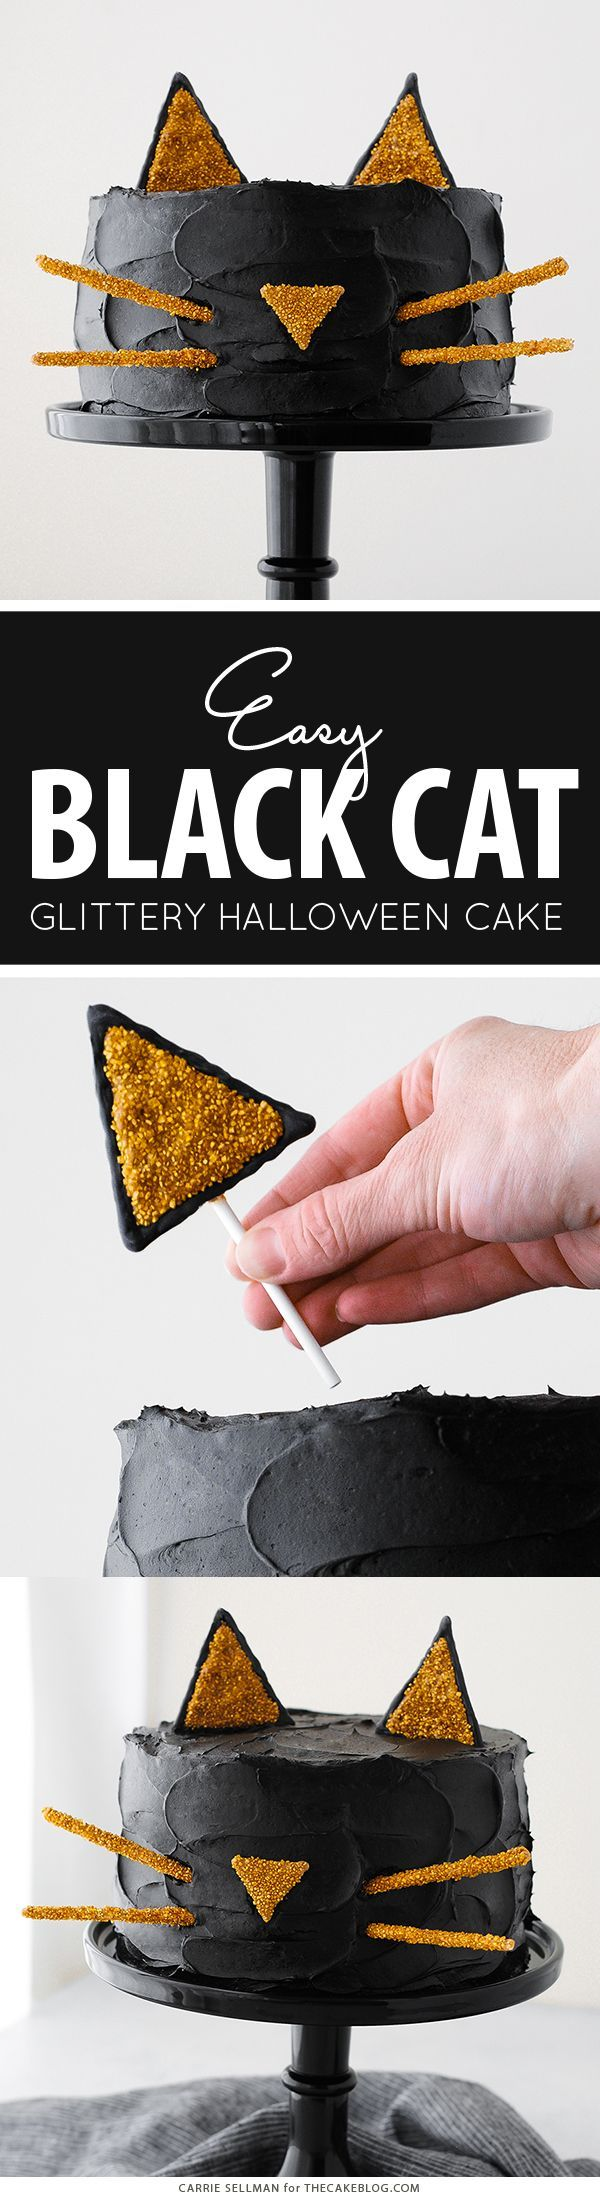 Celebrate Halloween with this purrfect Black Cat Cake with a simple silhouette face and gold glitter cat ears! Project by Carrie Sellman for http://TheCakeBlog.com.